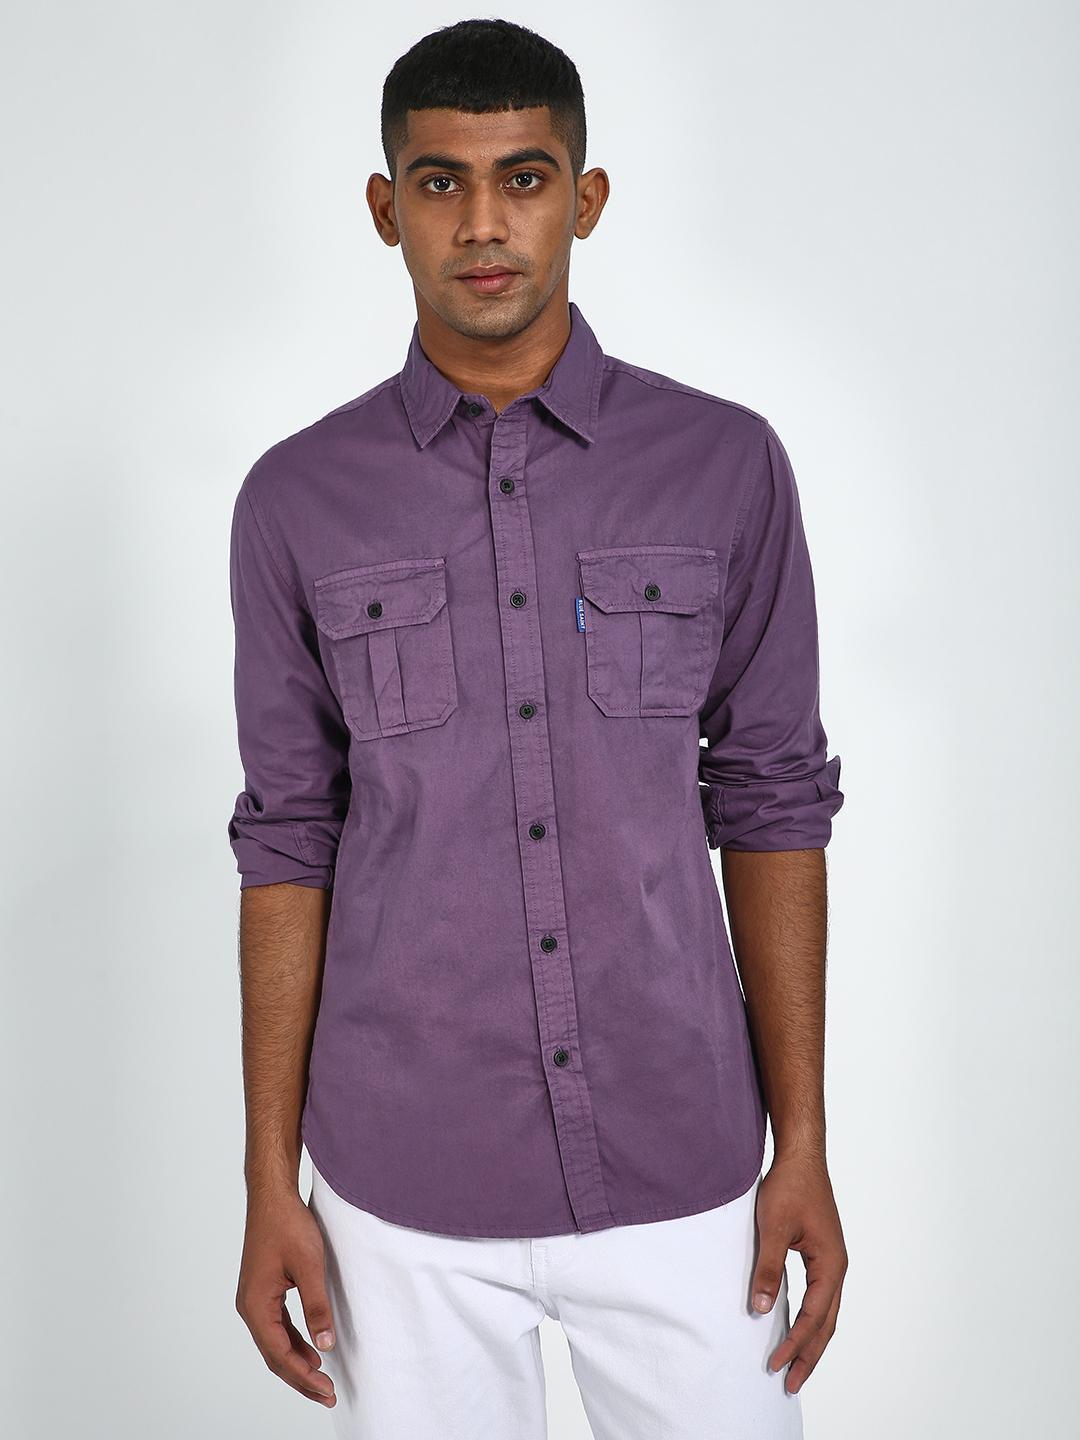 Blue Saint Purple Men's Purple Twin Pocket Slim Fit Shirt 1